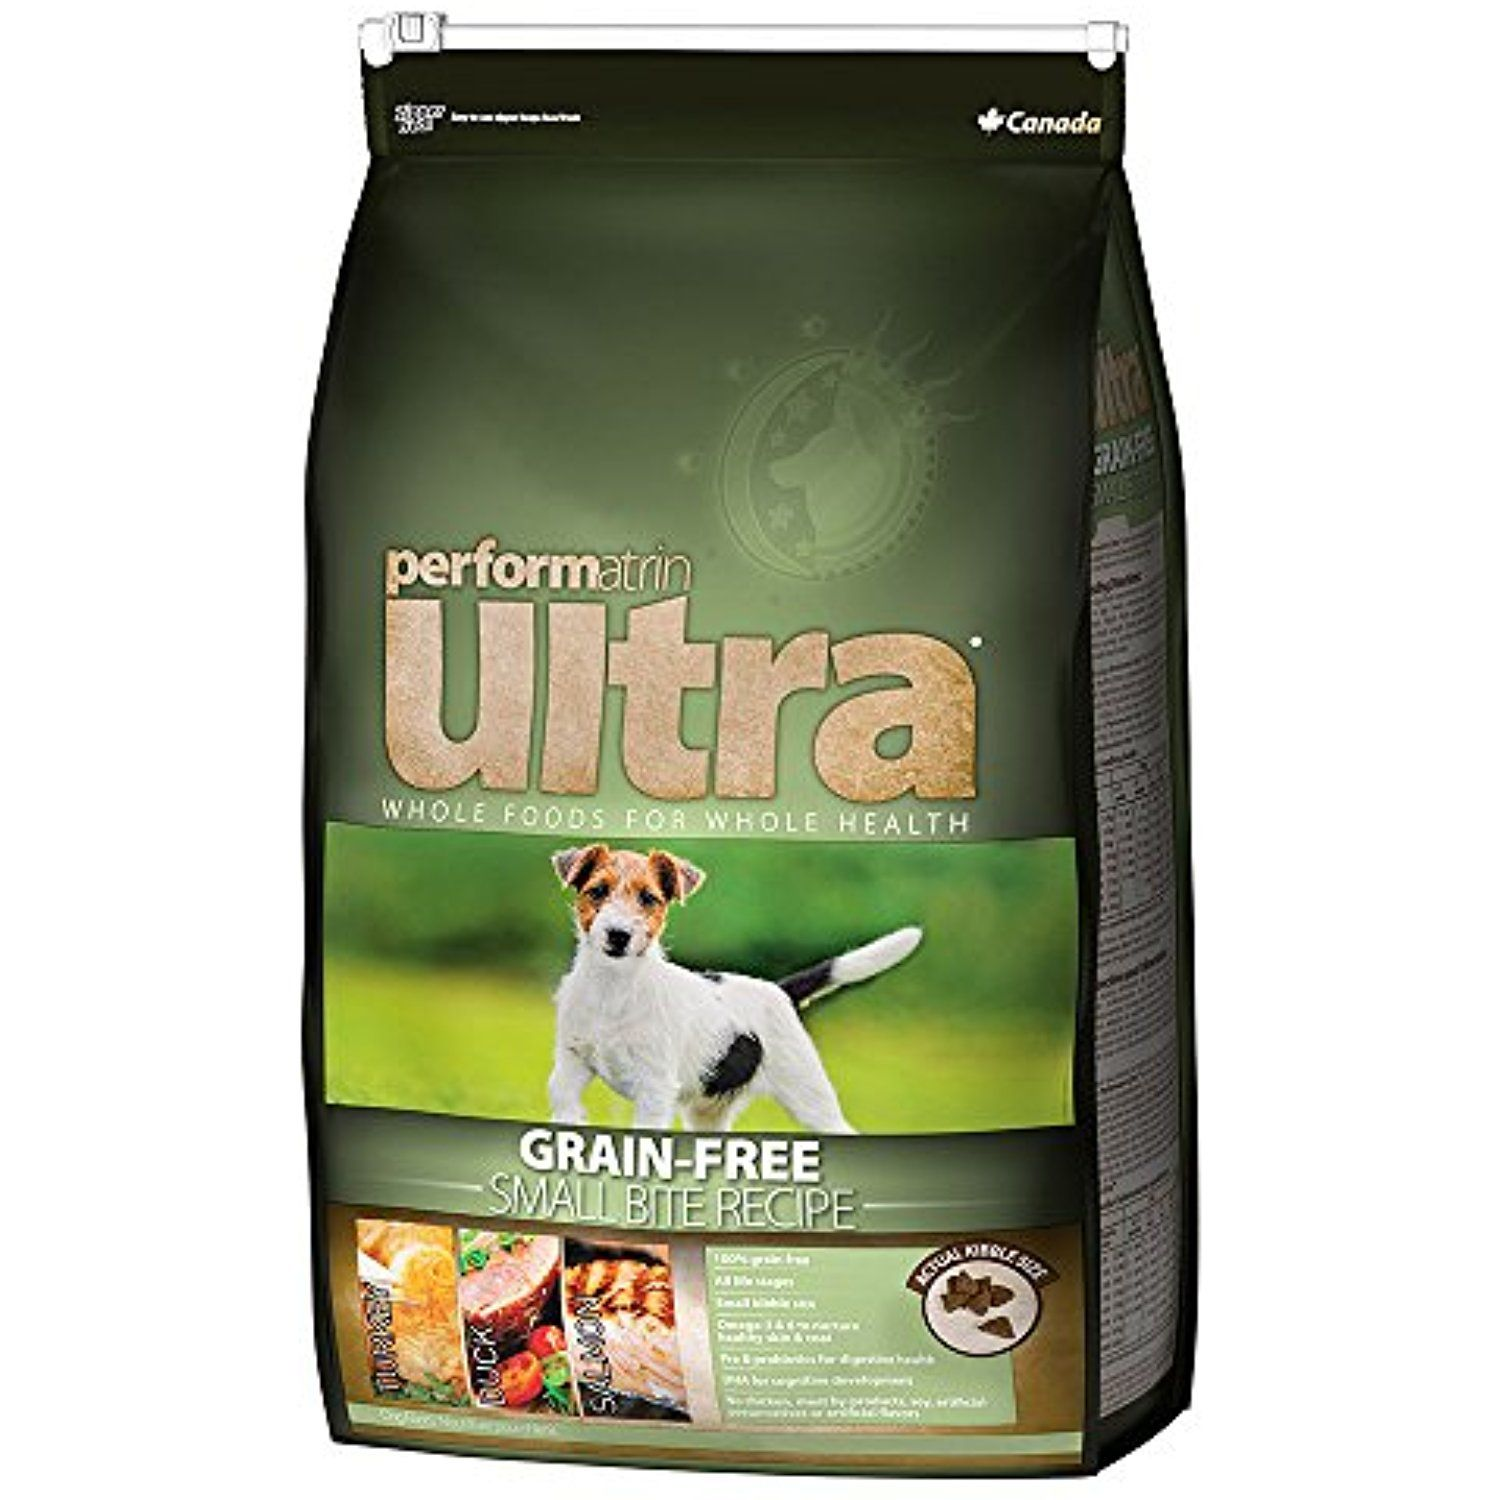 Performatrin Ultra Grain Free Small Bite Recipe Adult Dry Dog Food